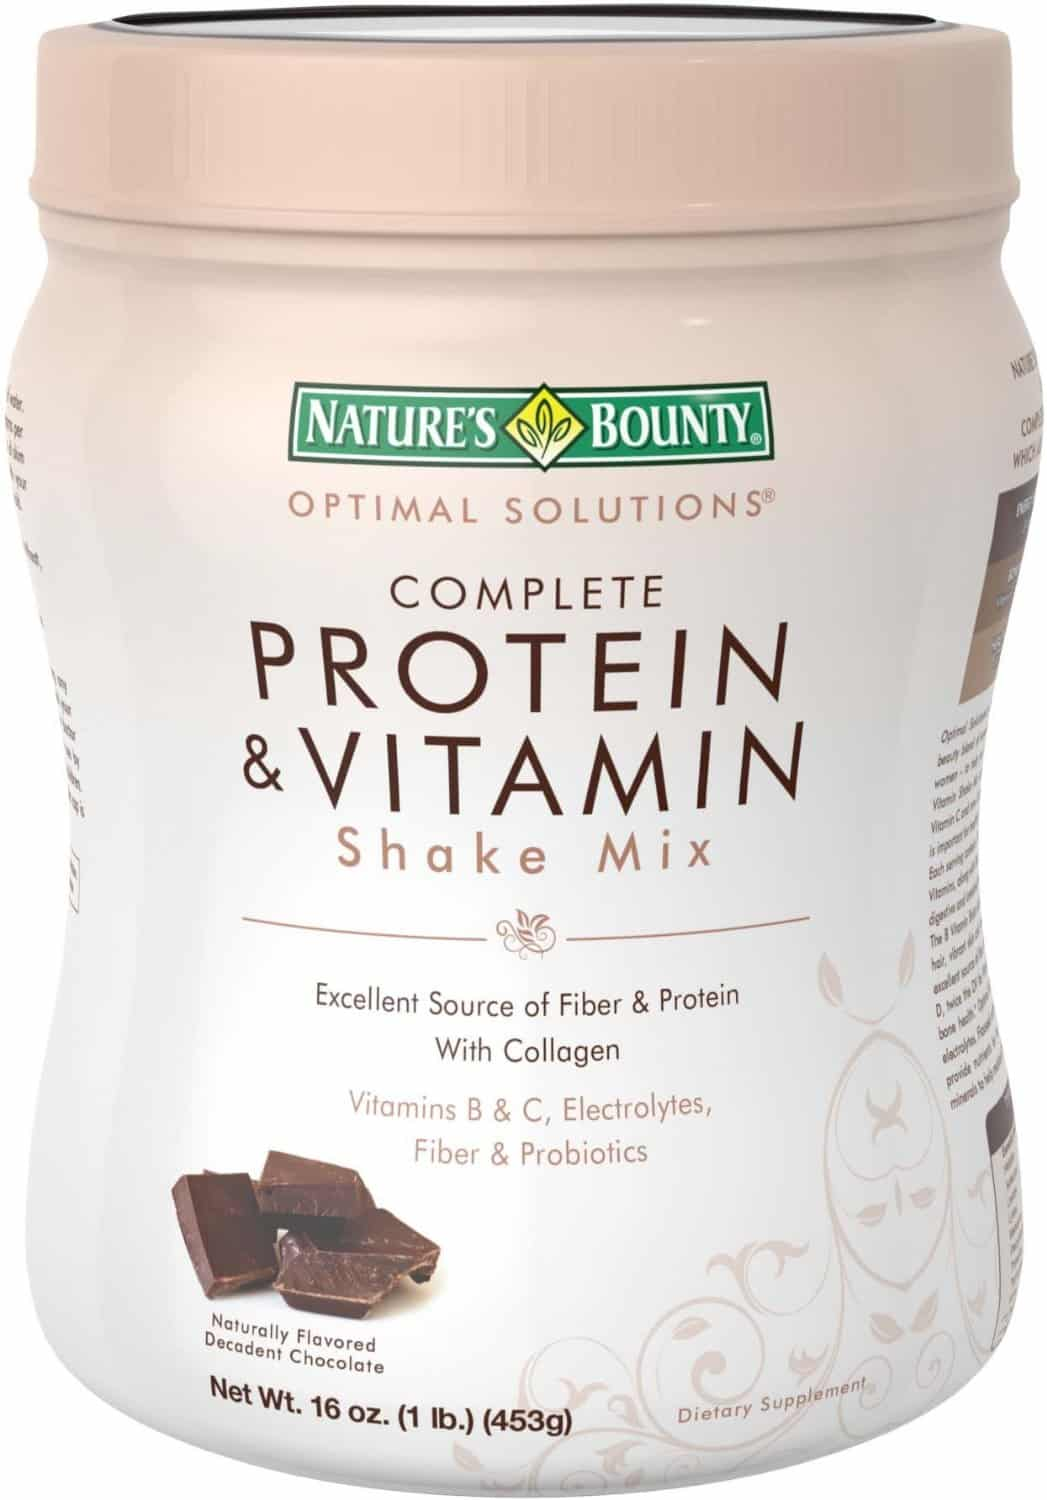 Nature's Bounty Optimal Solutions Protein Shake